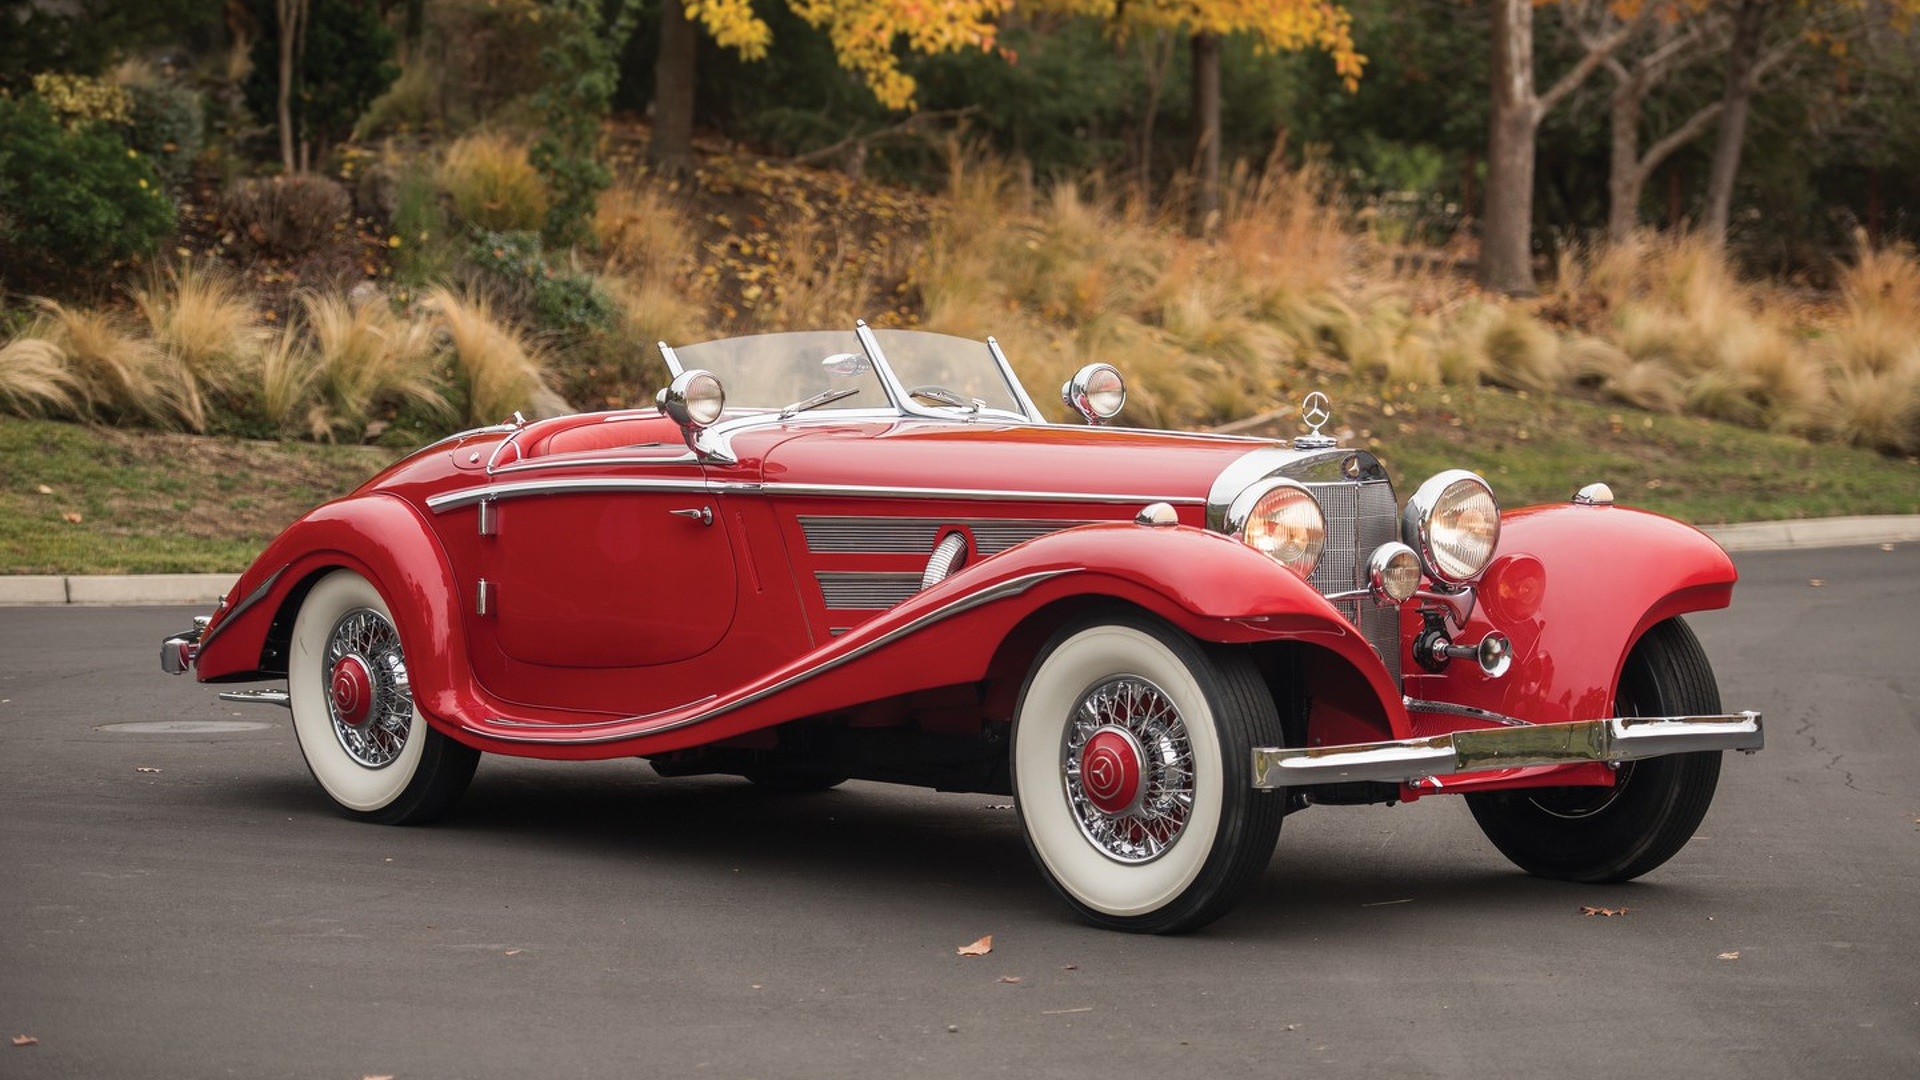 1937 Mercedes roadster sells for $9.9M